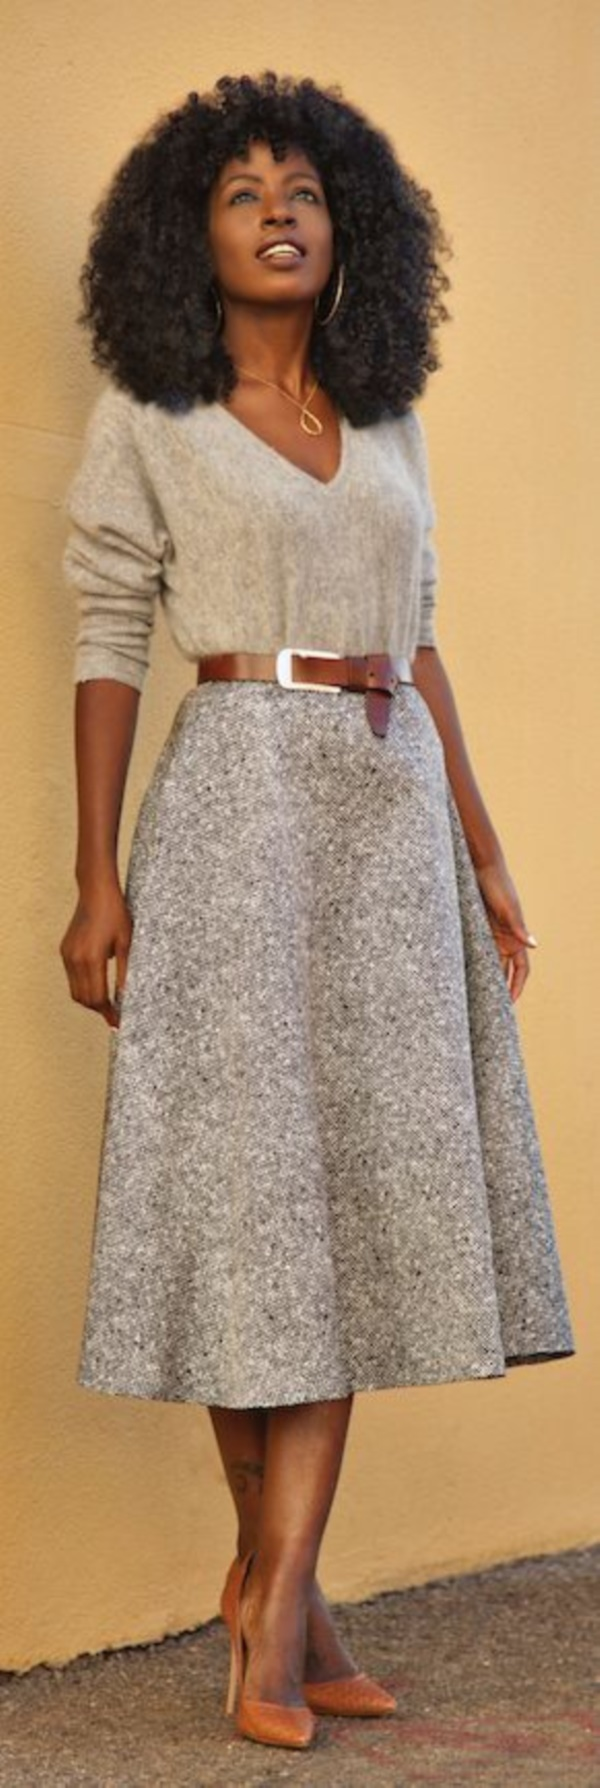 grey skirt outfit (73)